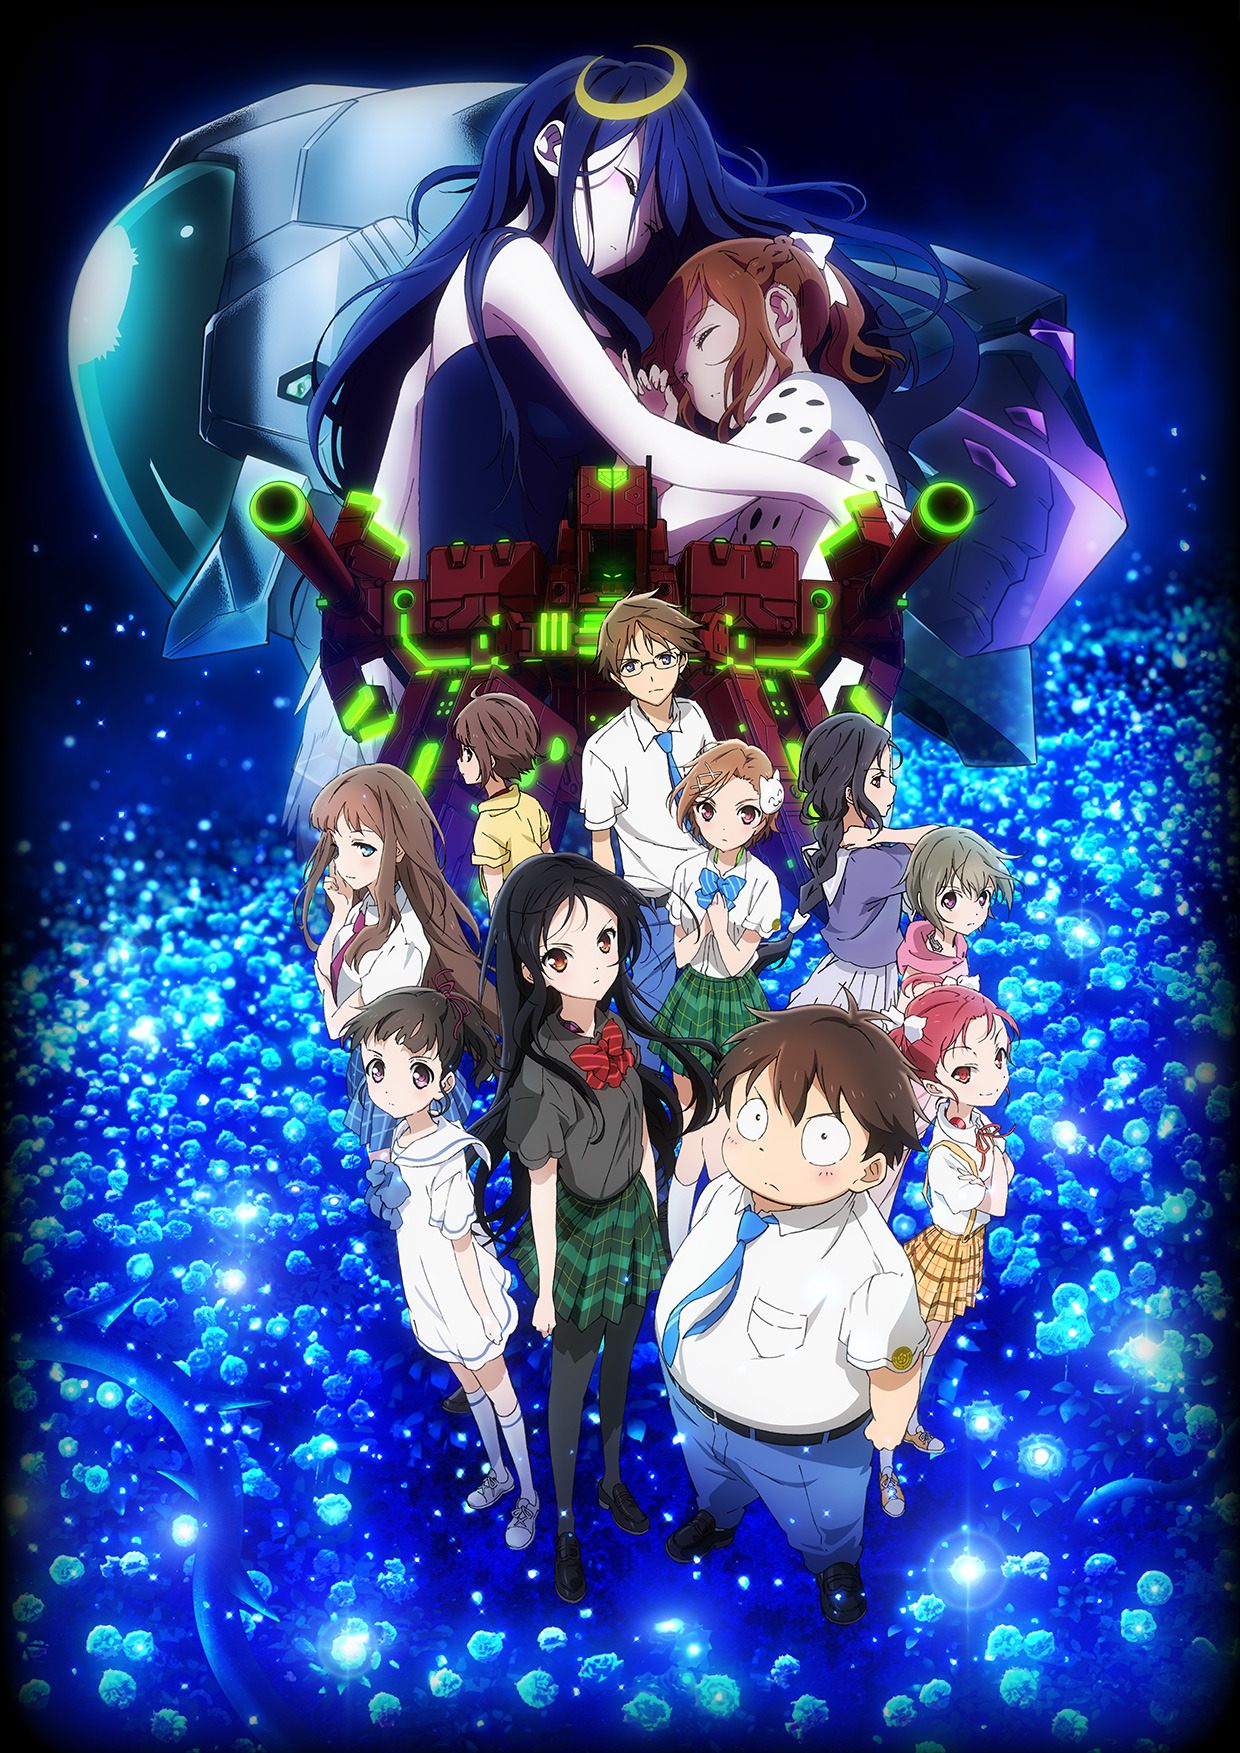 8D666F14C - Accel World: Infinite Burst (Movie) [01/01] [Mega] [NP] [320MB] - Anime Ligero [Descargas]